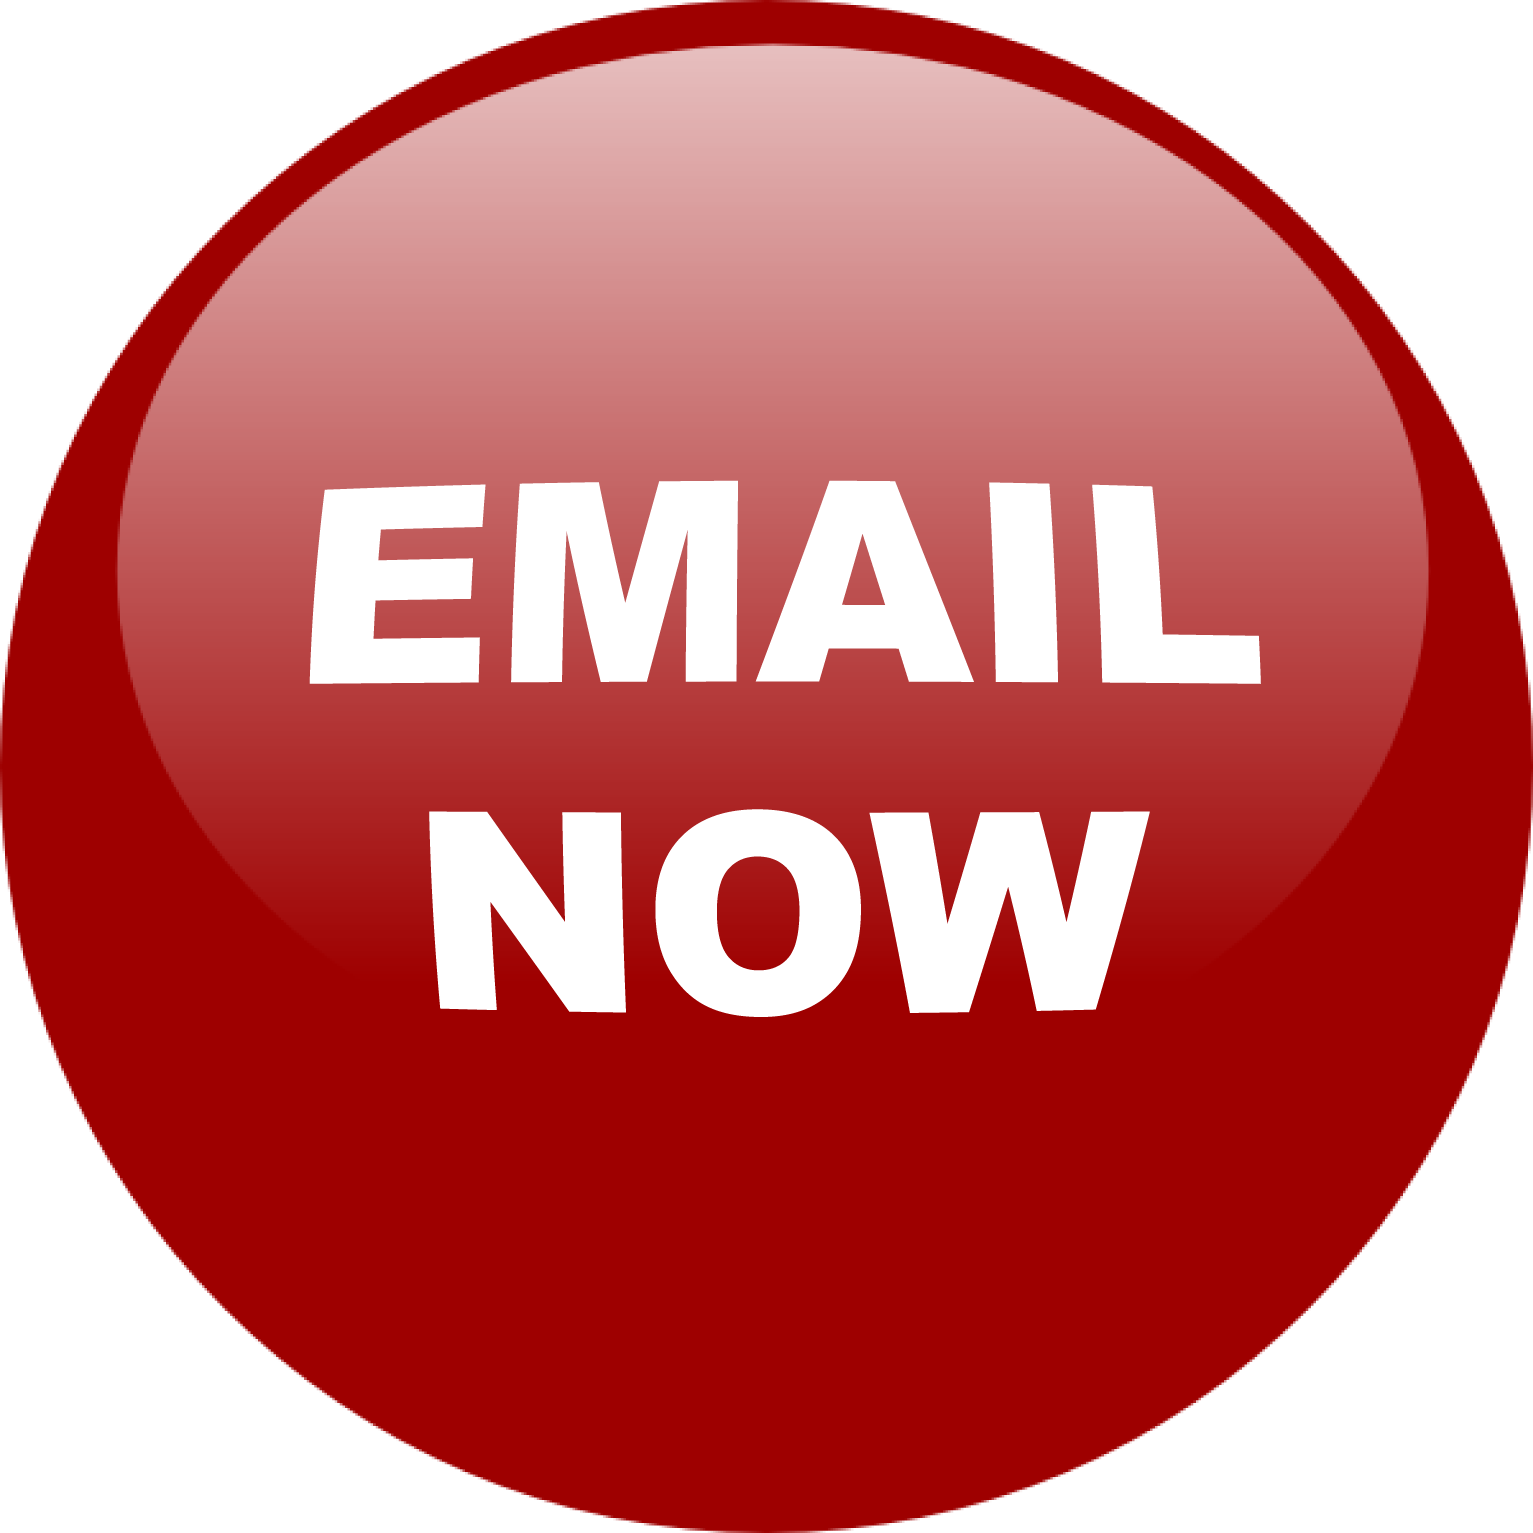 Email Now Button